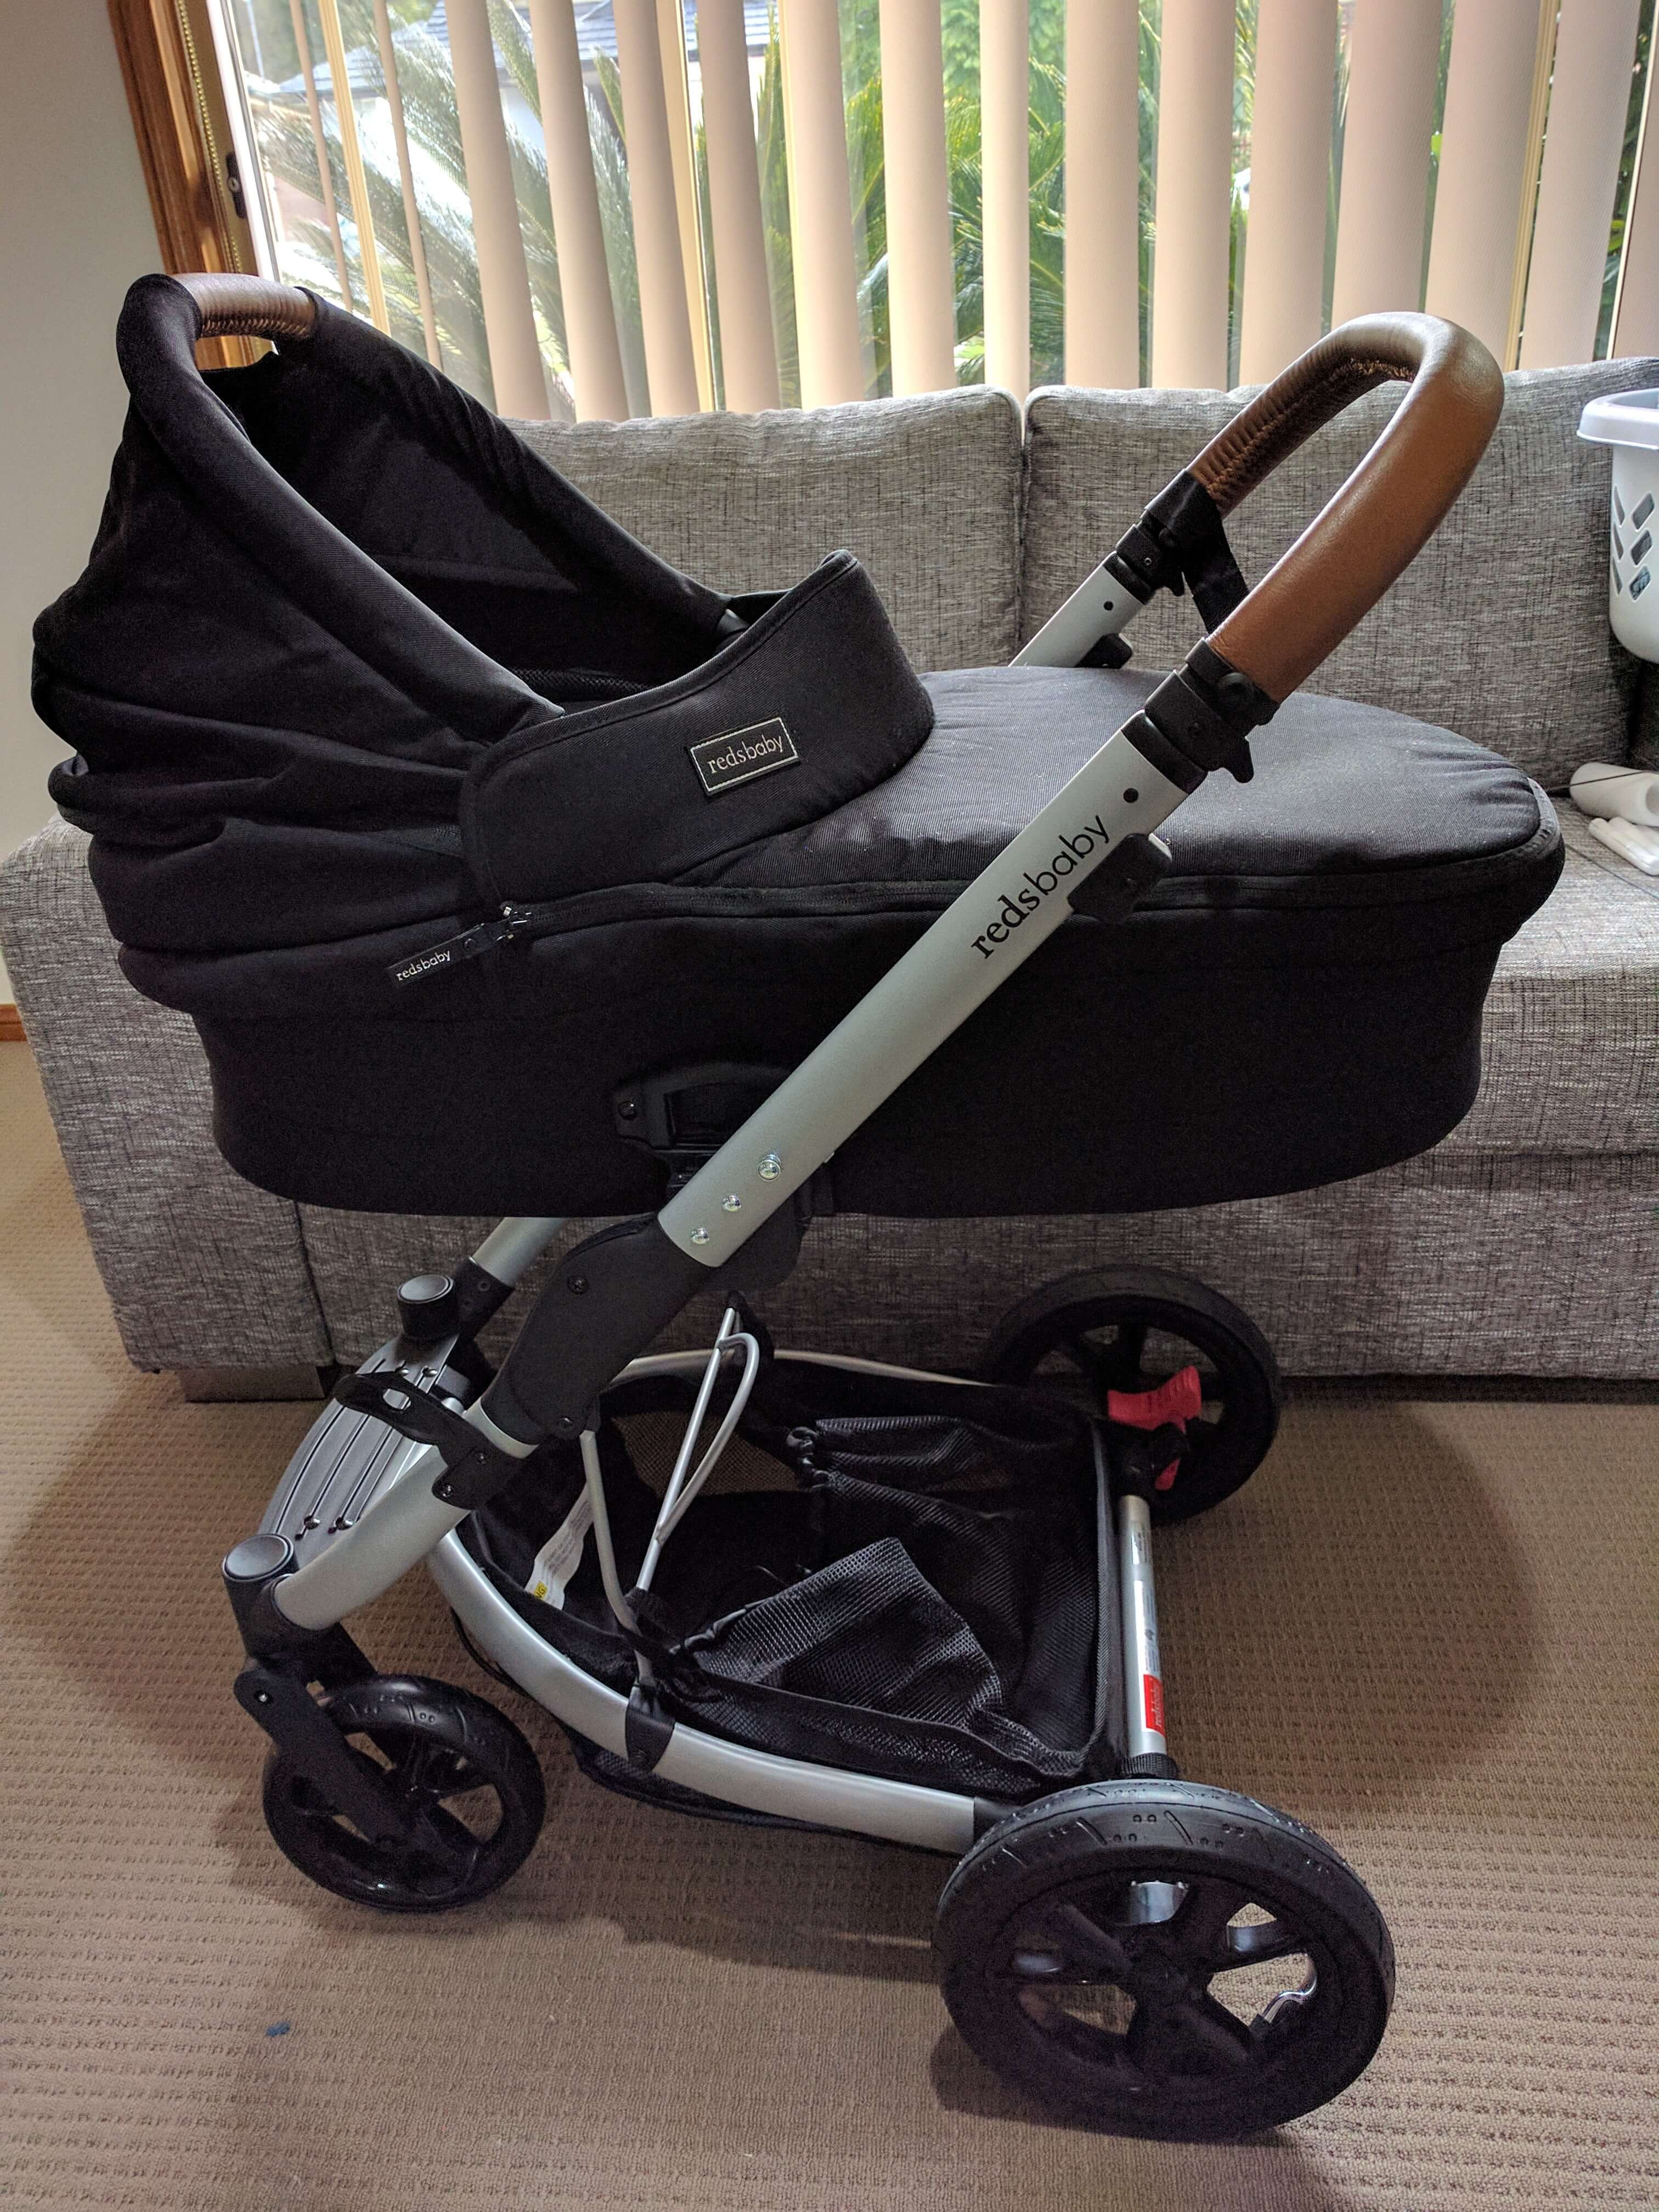 Redsbaby Jive review - side view of the pram with bassinet